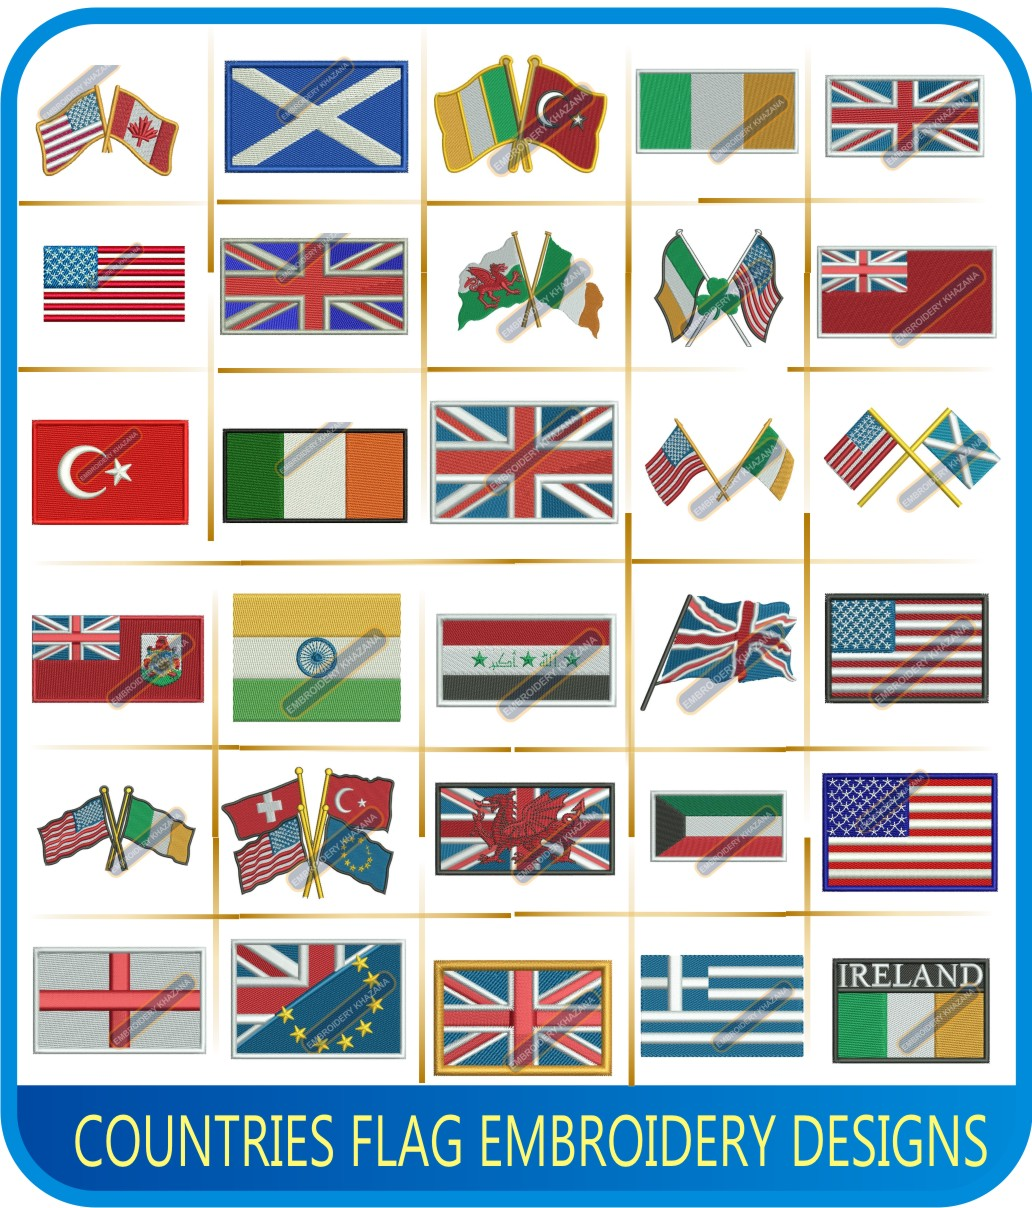 Countries Flag Embroidery Designs